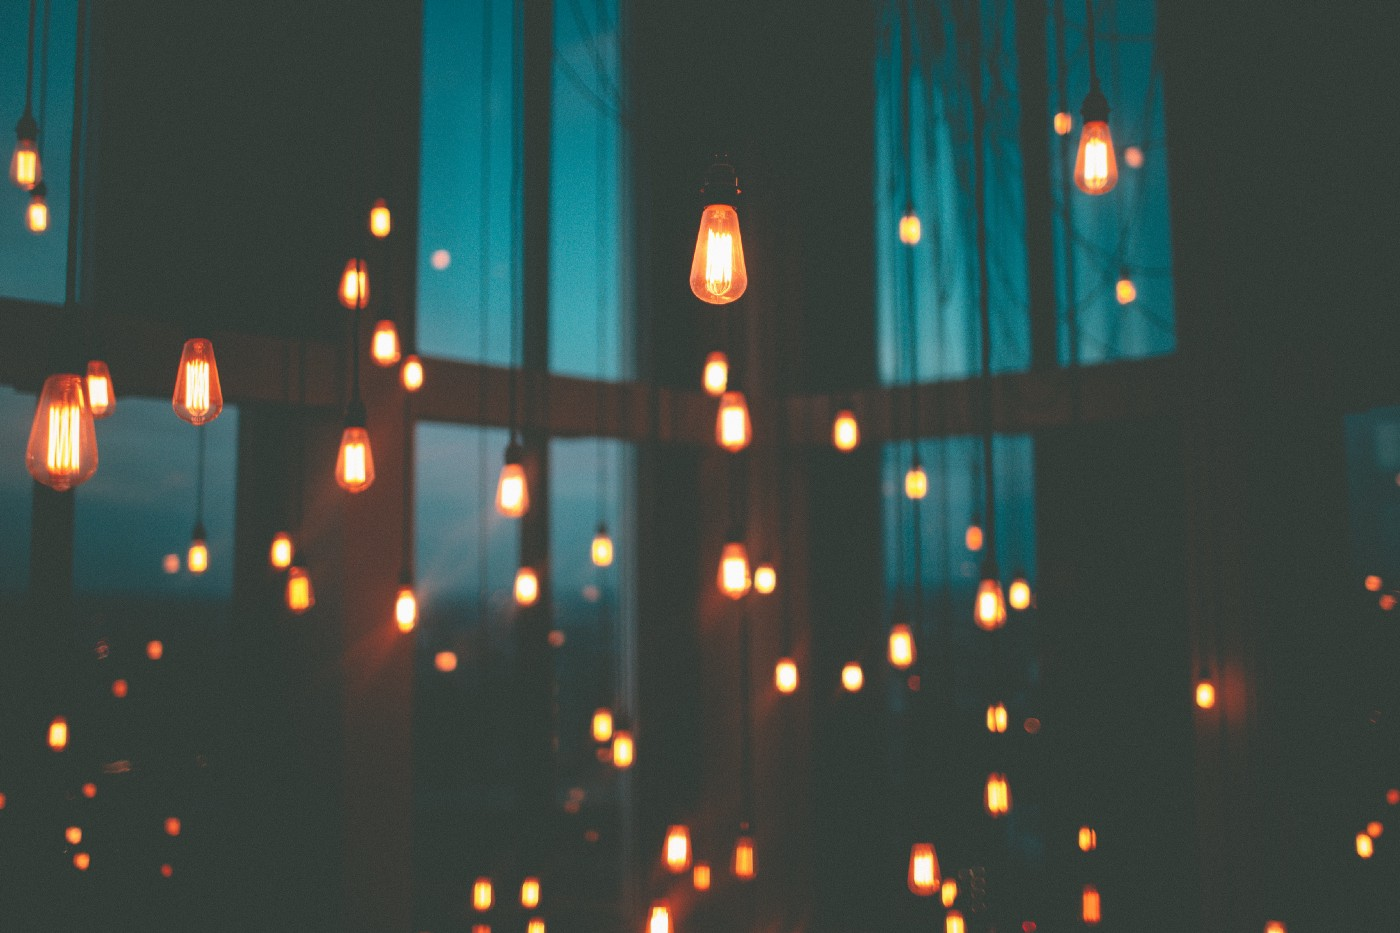 A picture of many hanging lightbulbs burning brightly against the backdrop of a dark room partially illuminated by light coming through blue curtains.